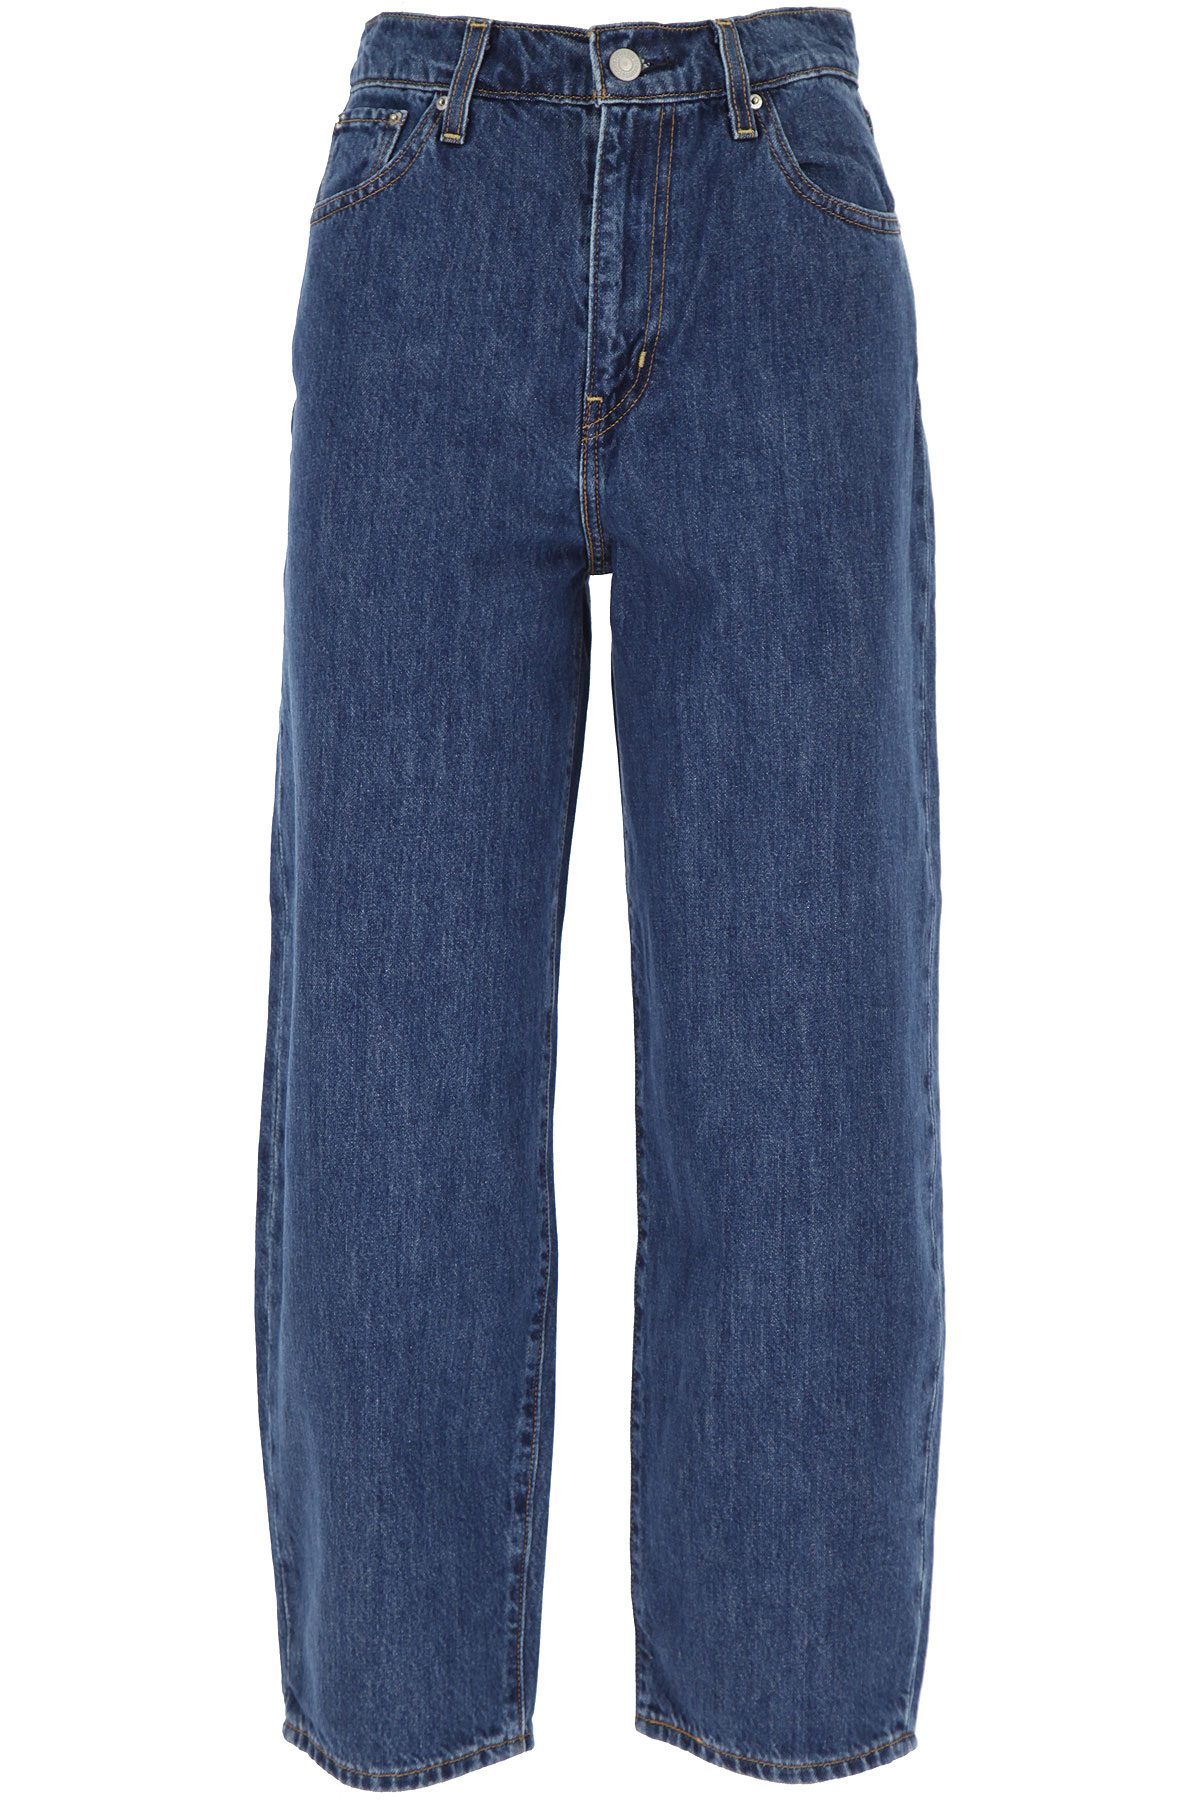 Levis Jeans On Sale, Blue Denim, Cotton, 2019, 24 27